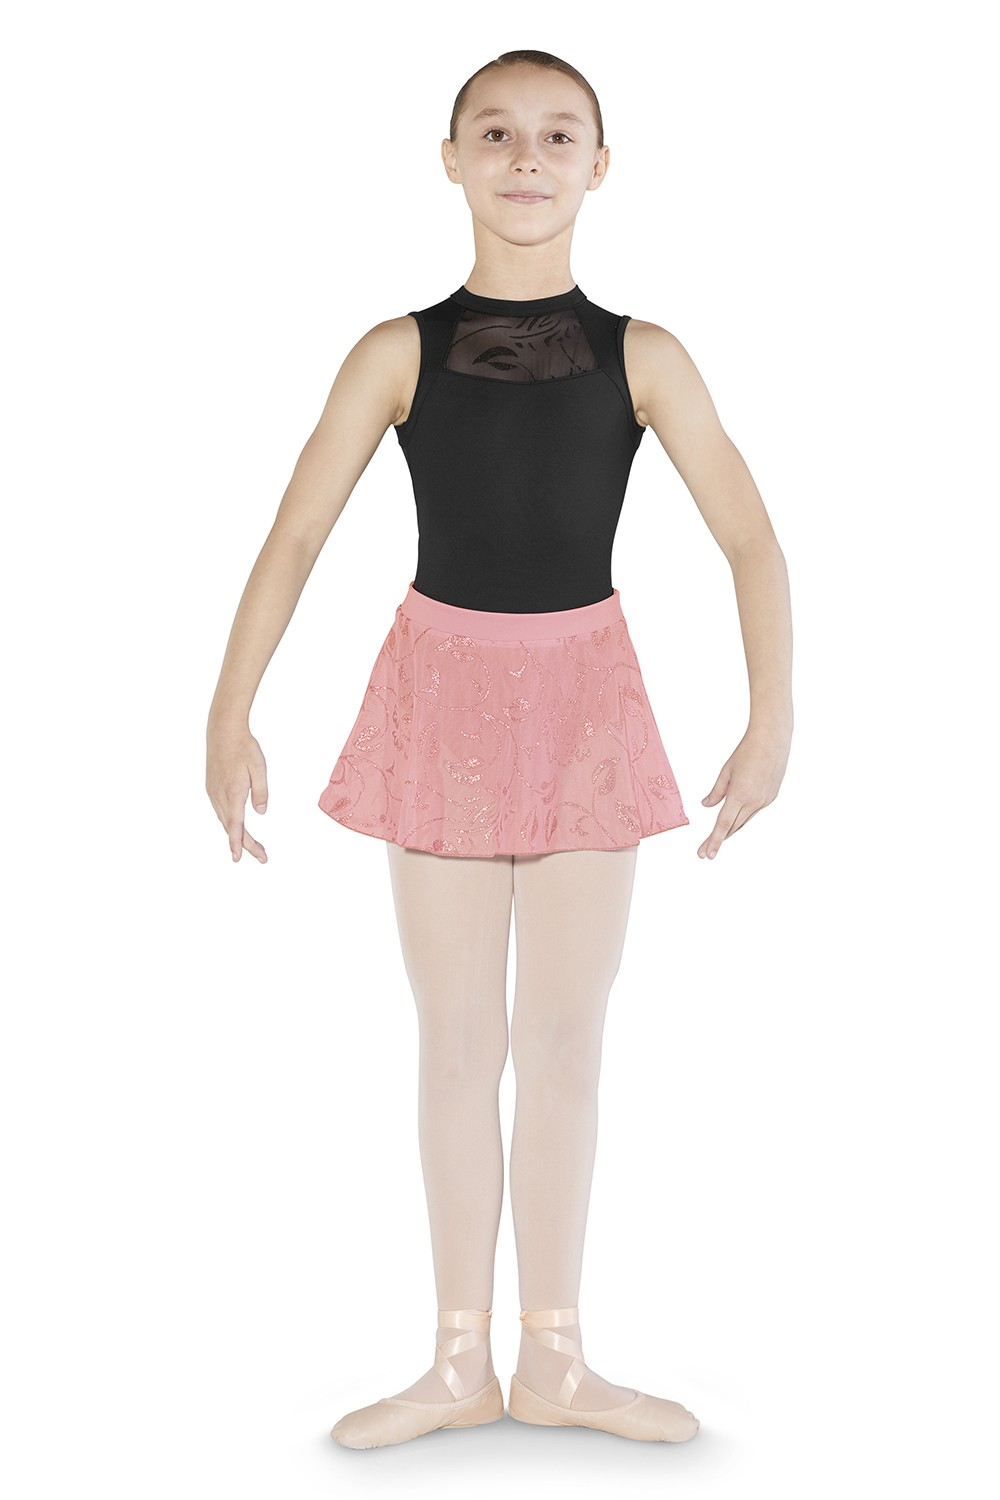 3f1fcb62a BLOCH® Children's Dance & Ballet Skirts - BLOCH® US Store